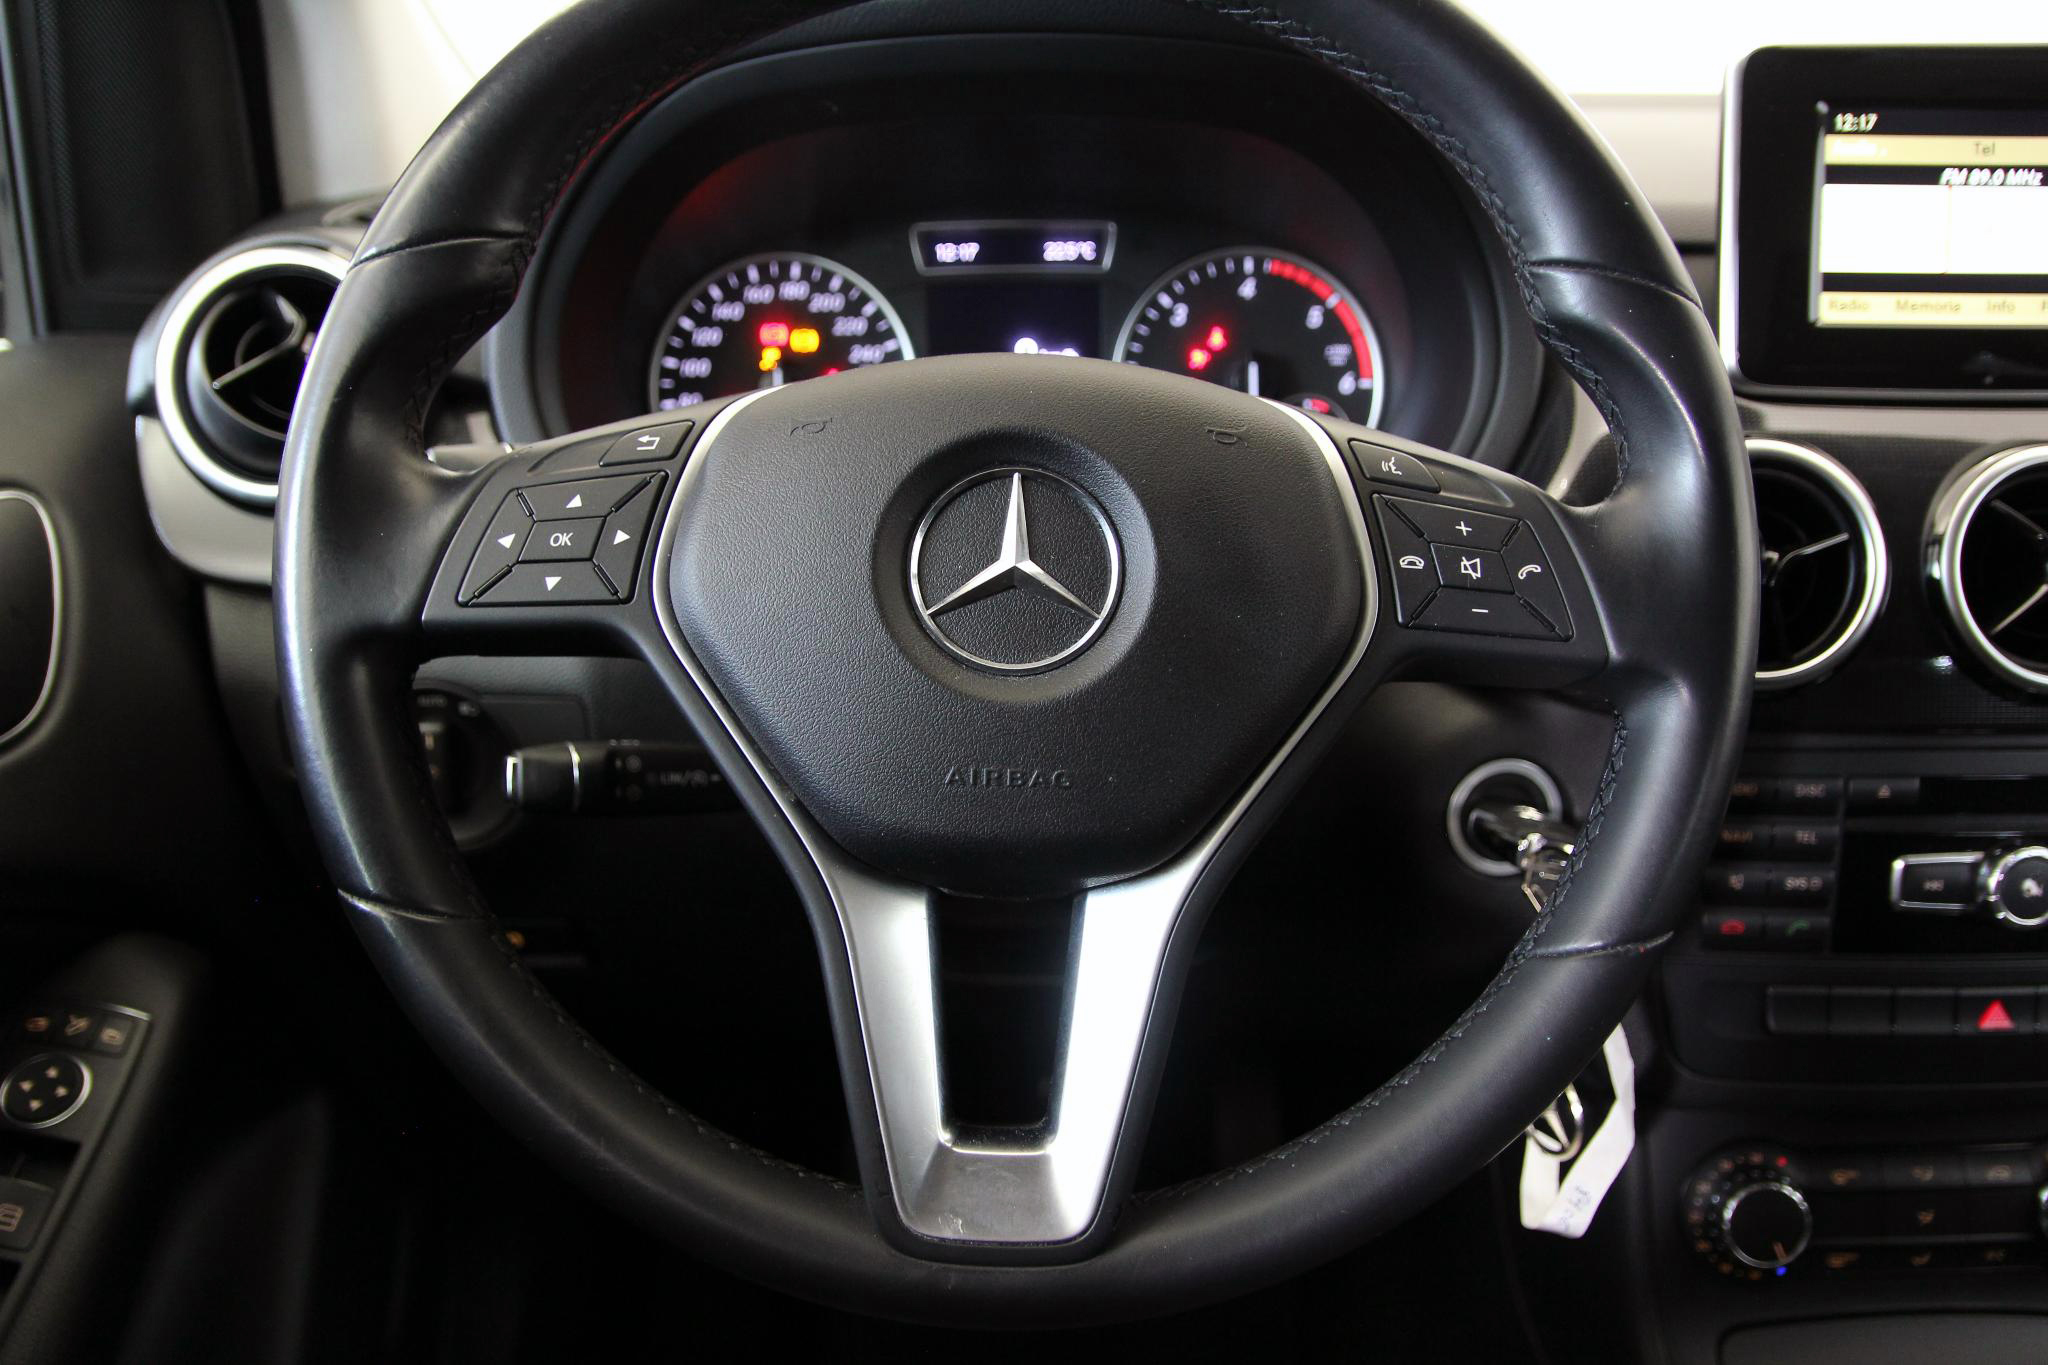 Mercedes-Benz Clase B CLASE B 180 CDI BLUE EFFICIENCY 5P imagen 20